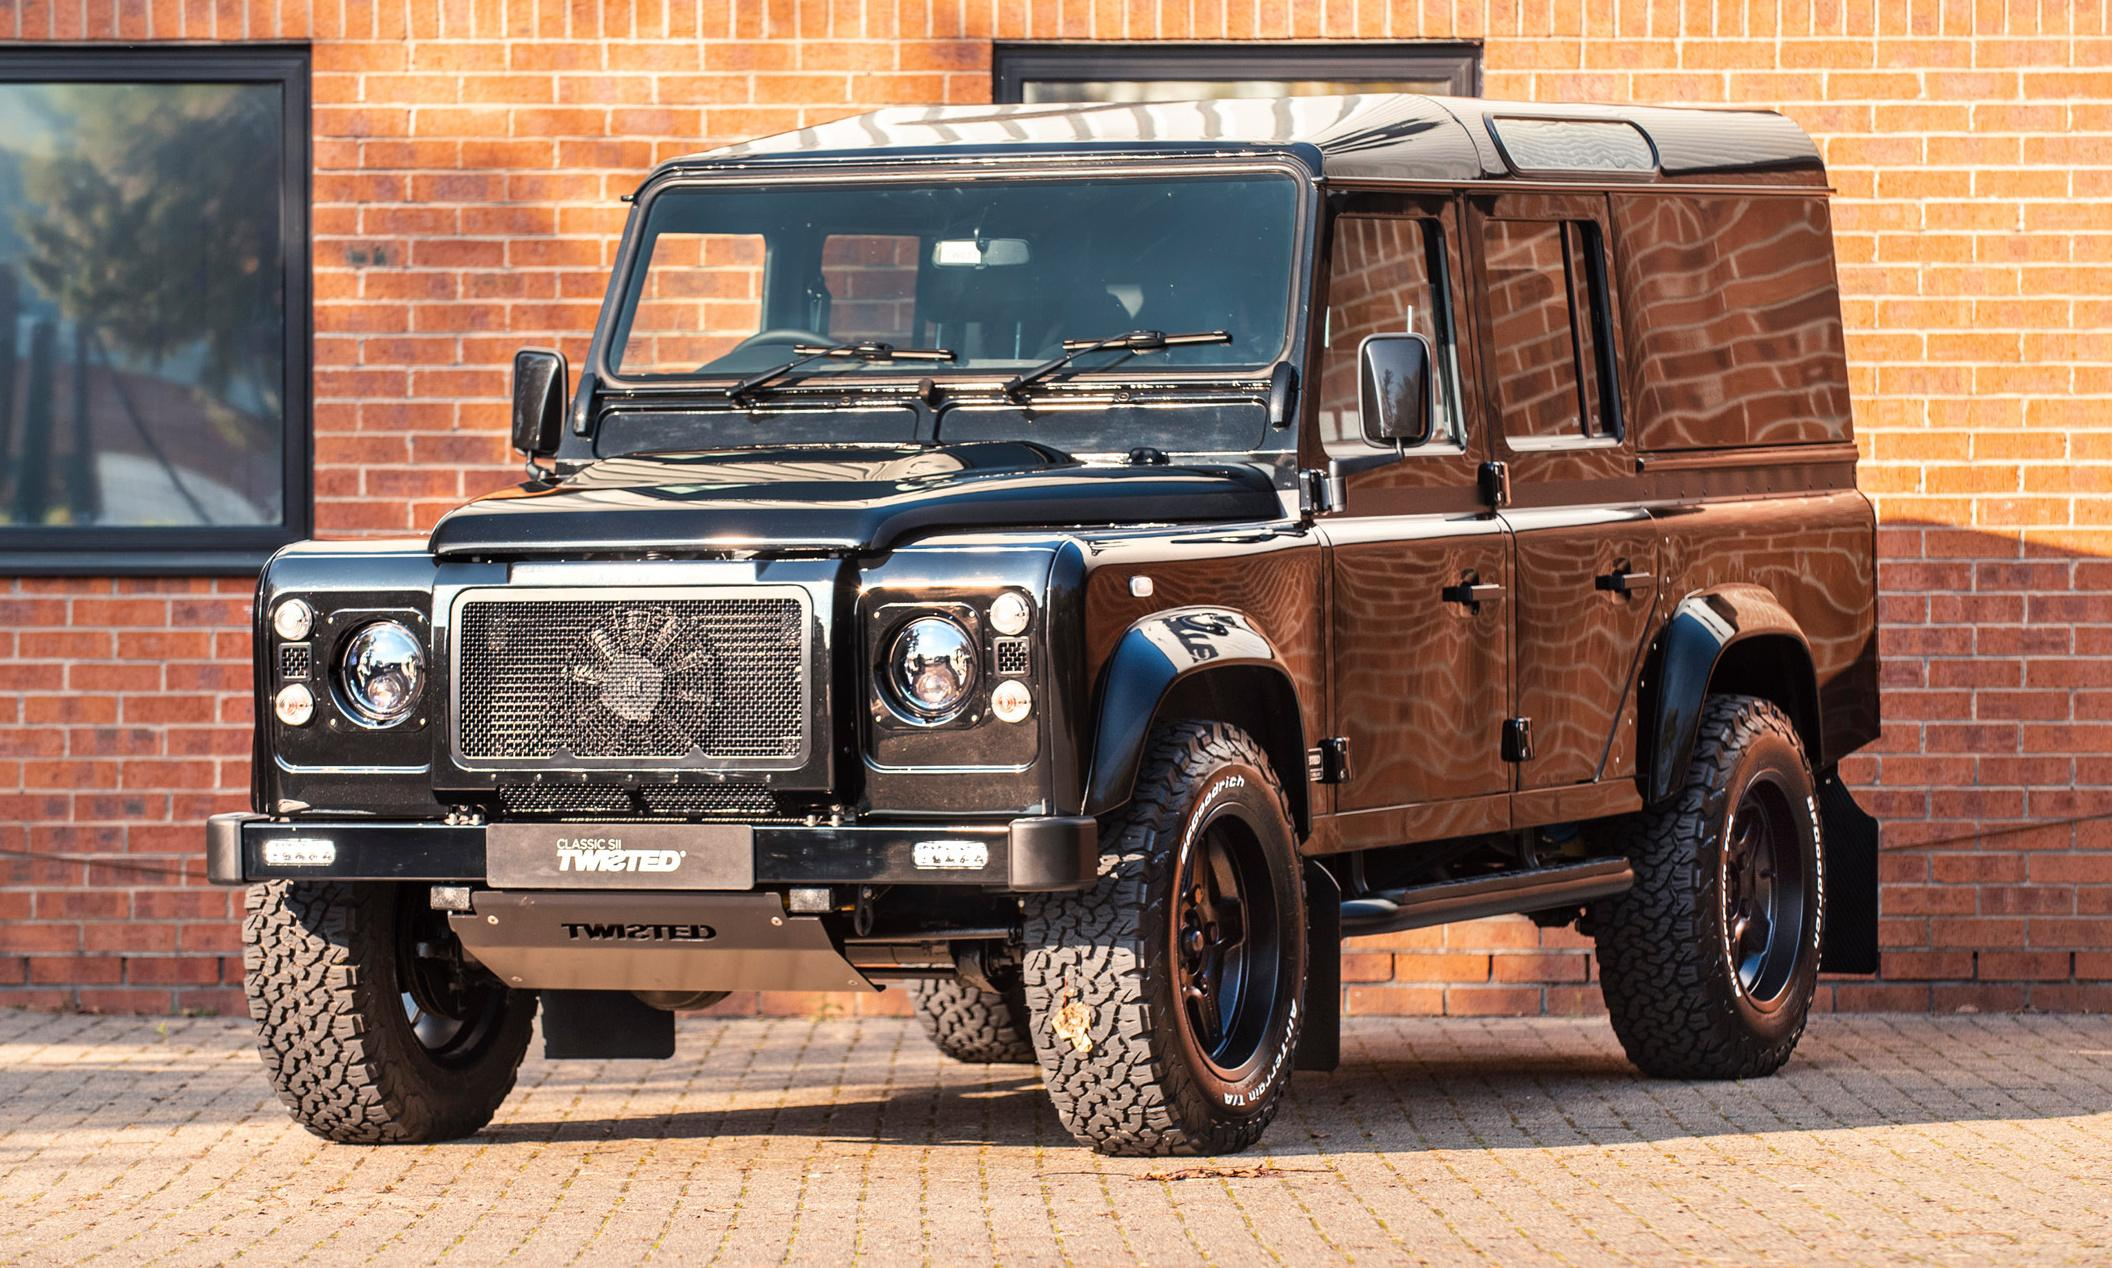 Twisted Land Rover preview: 'The much-loved classic gets a major twist'